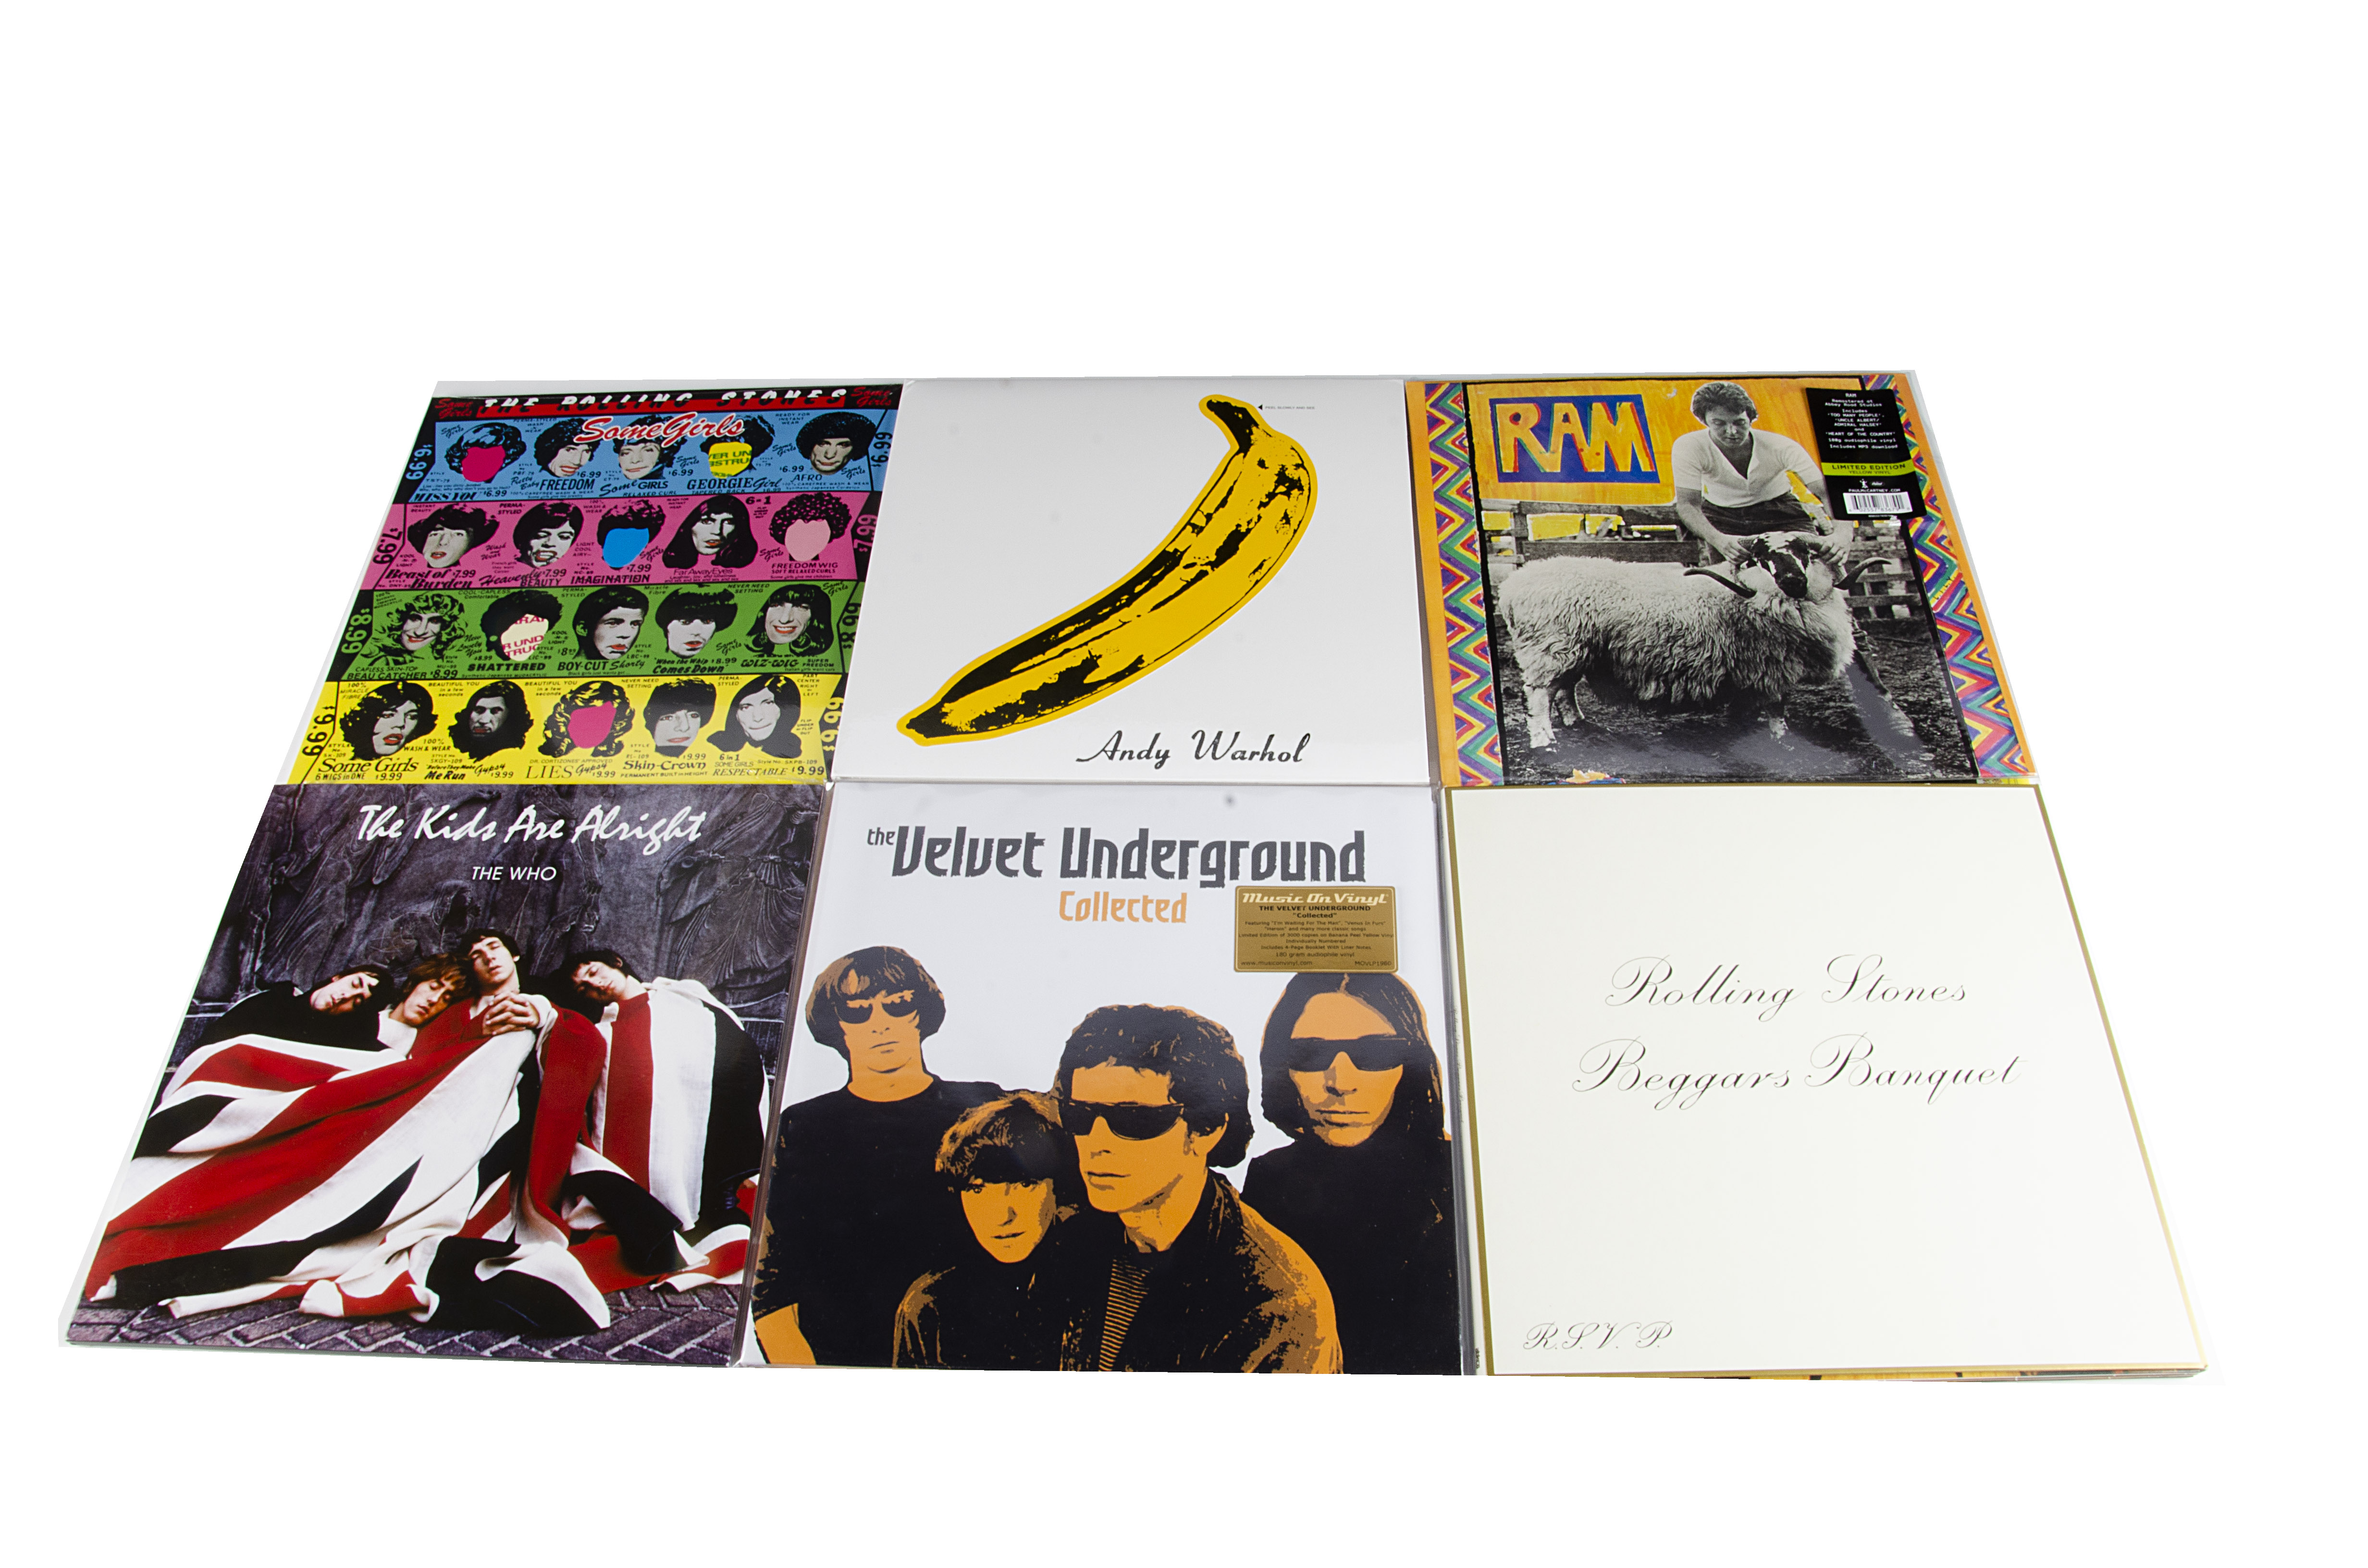 Sixties LPs, nine albums of coloured vinyl and special editions by Sixties artists comprising